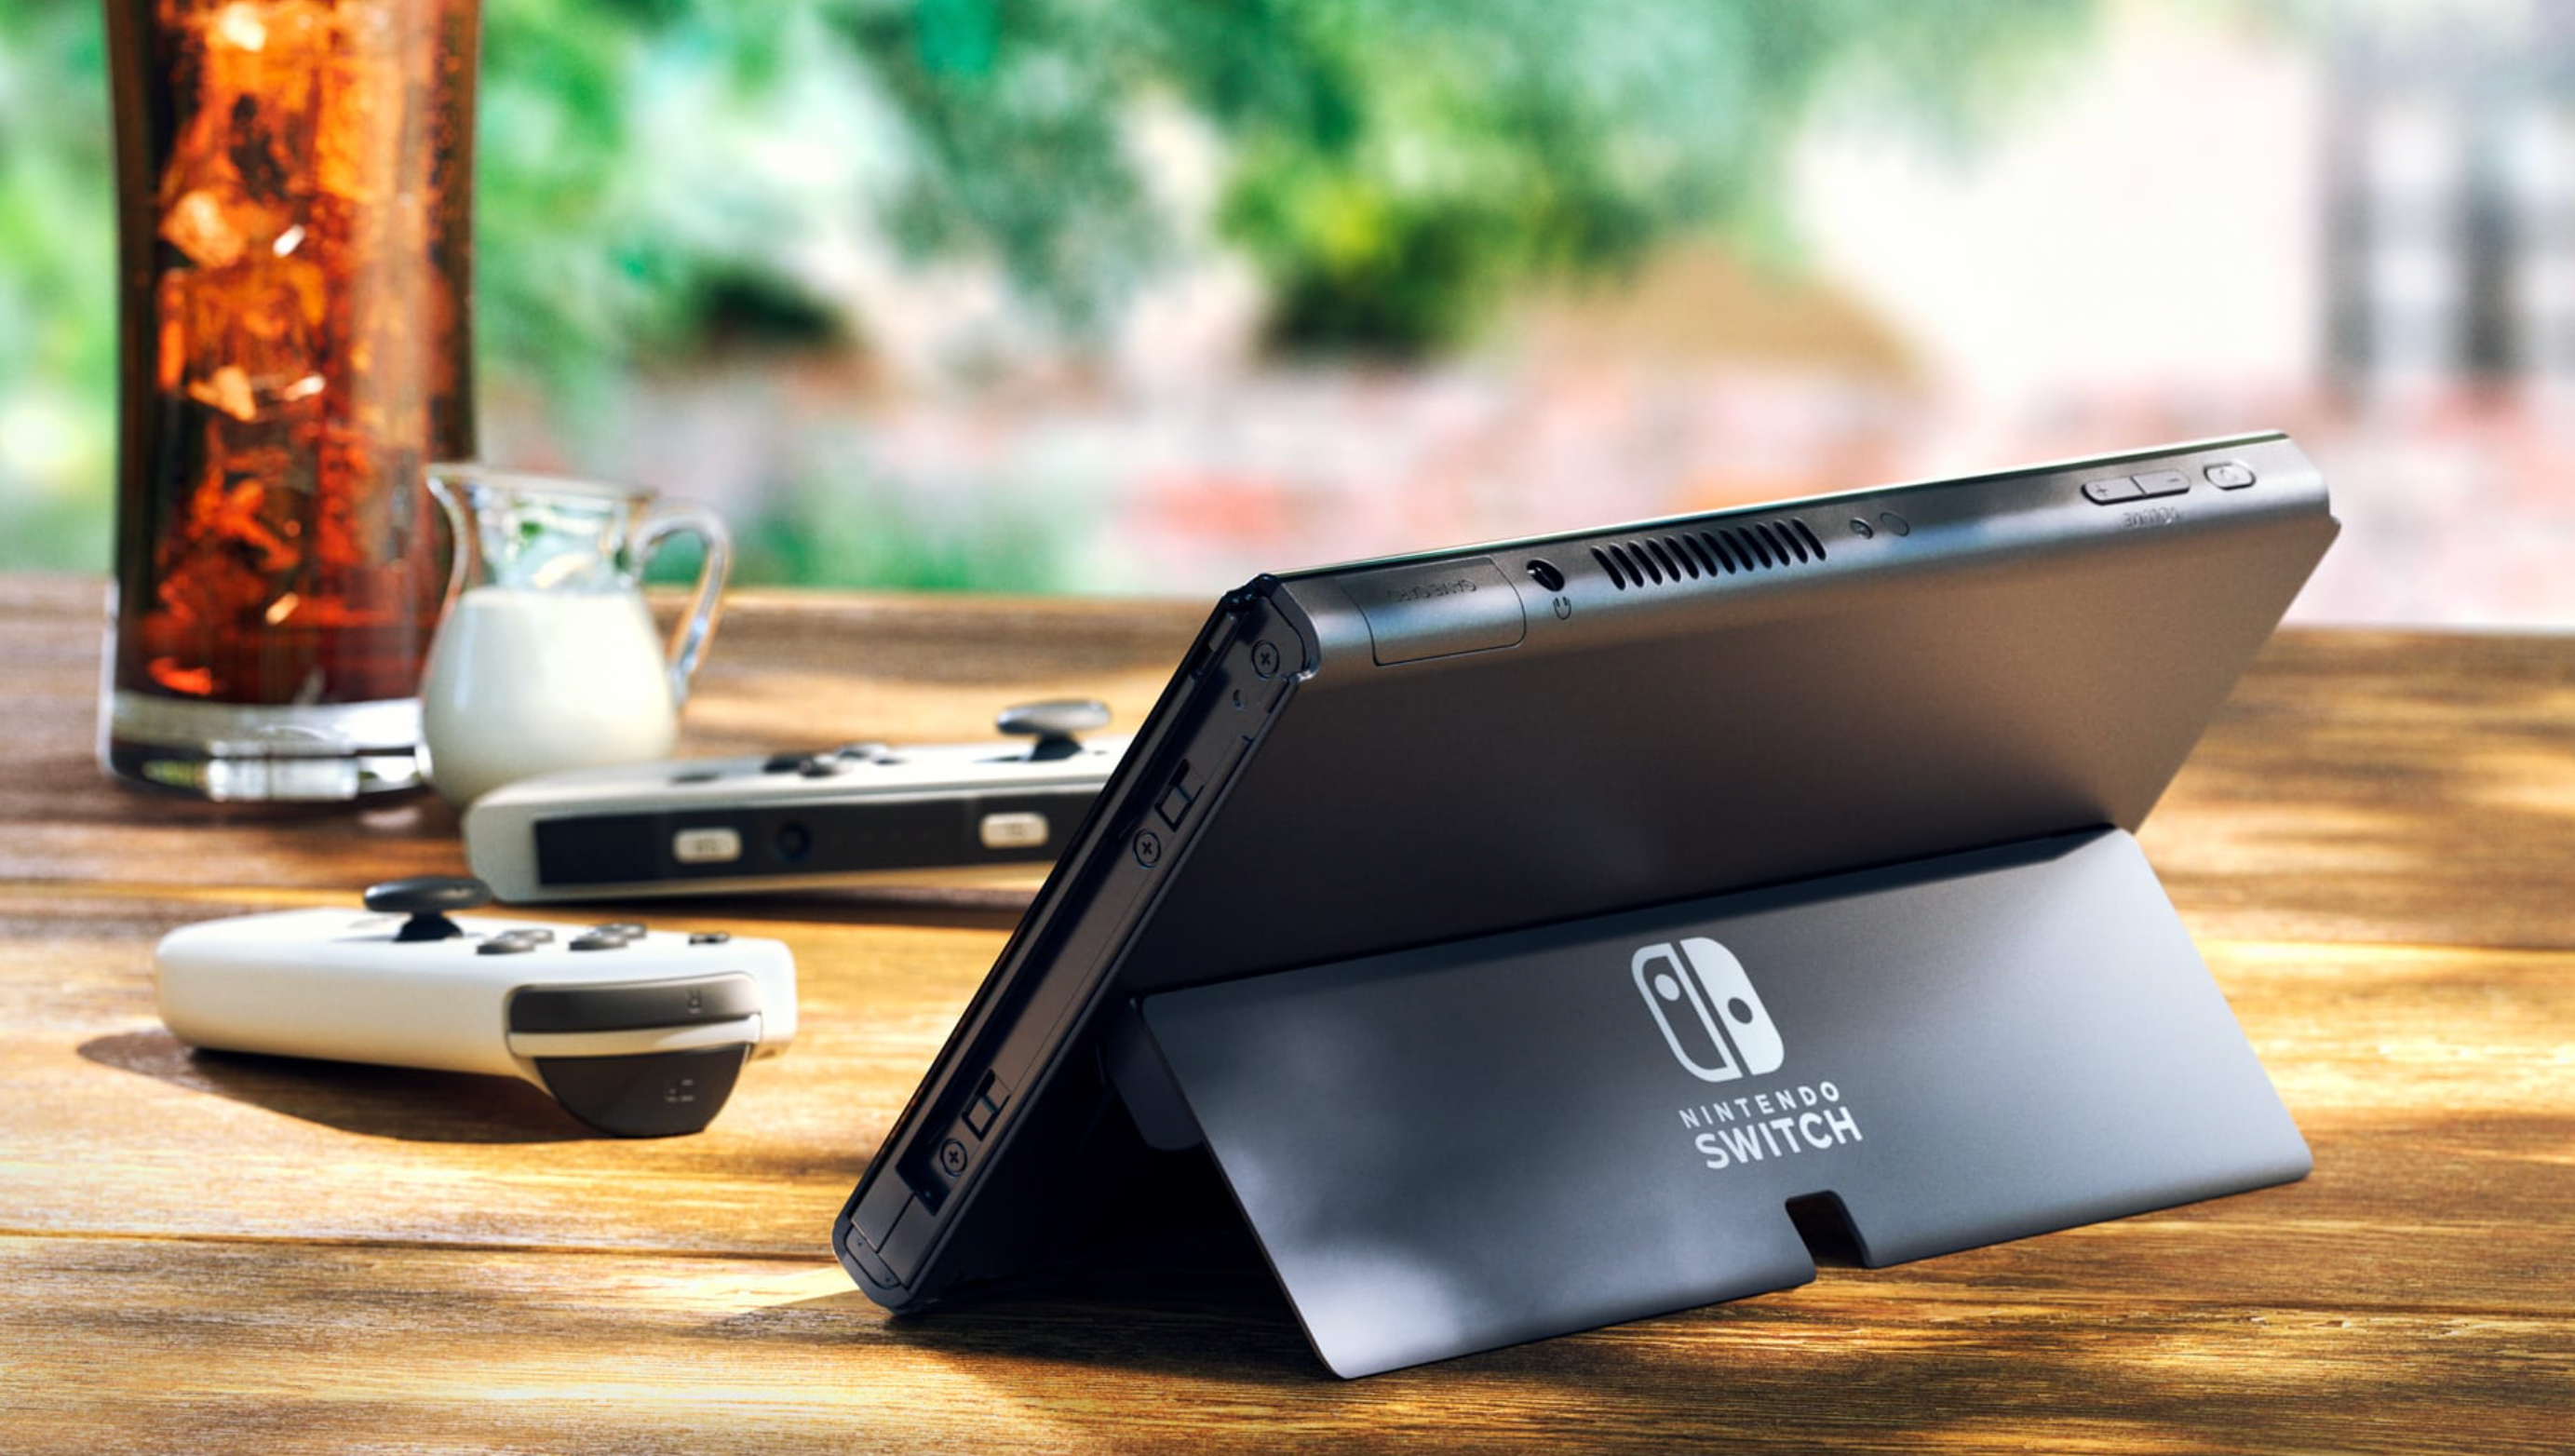 Nintendo Switch OLED Model standing using its kickstand next to white joy-con controllers